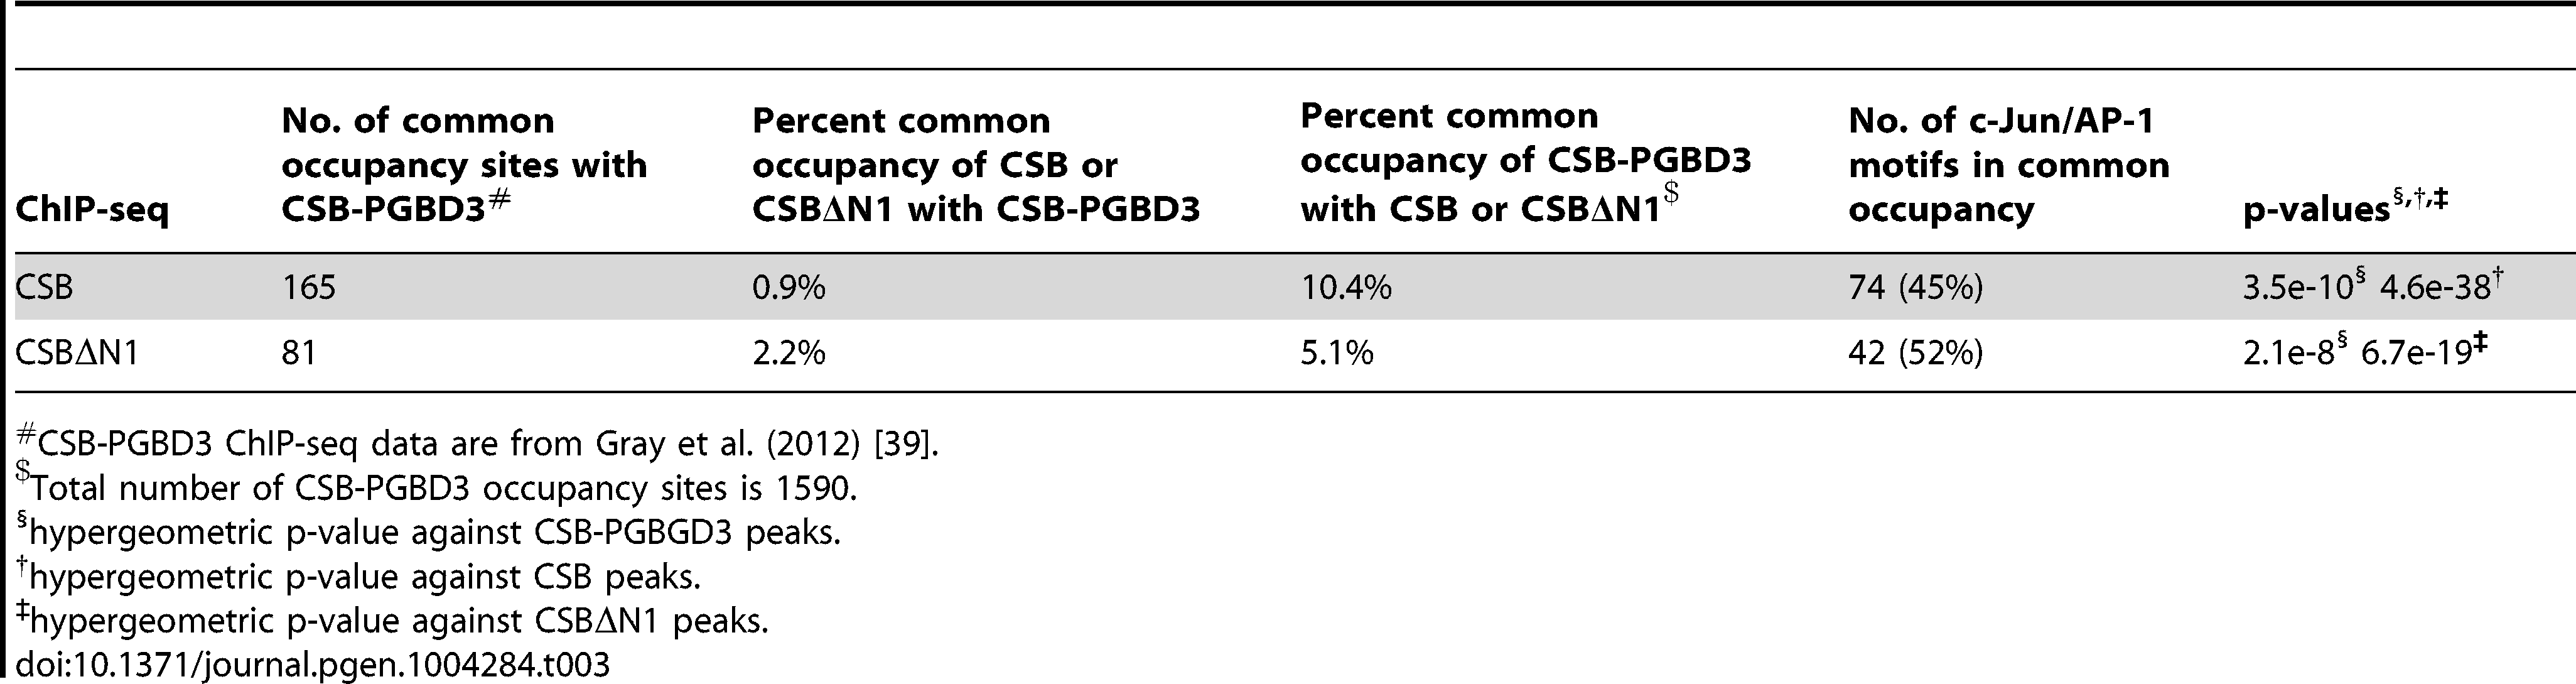 Comparison of CSB and CSBΔN1 occupancy with CSB-PGBD3<em class=&quot;ref&quot;>#</em>.